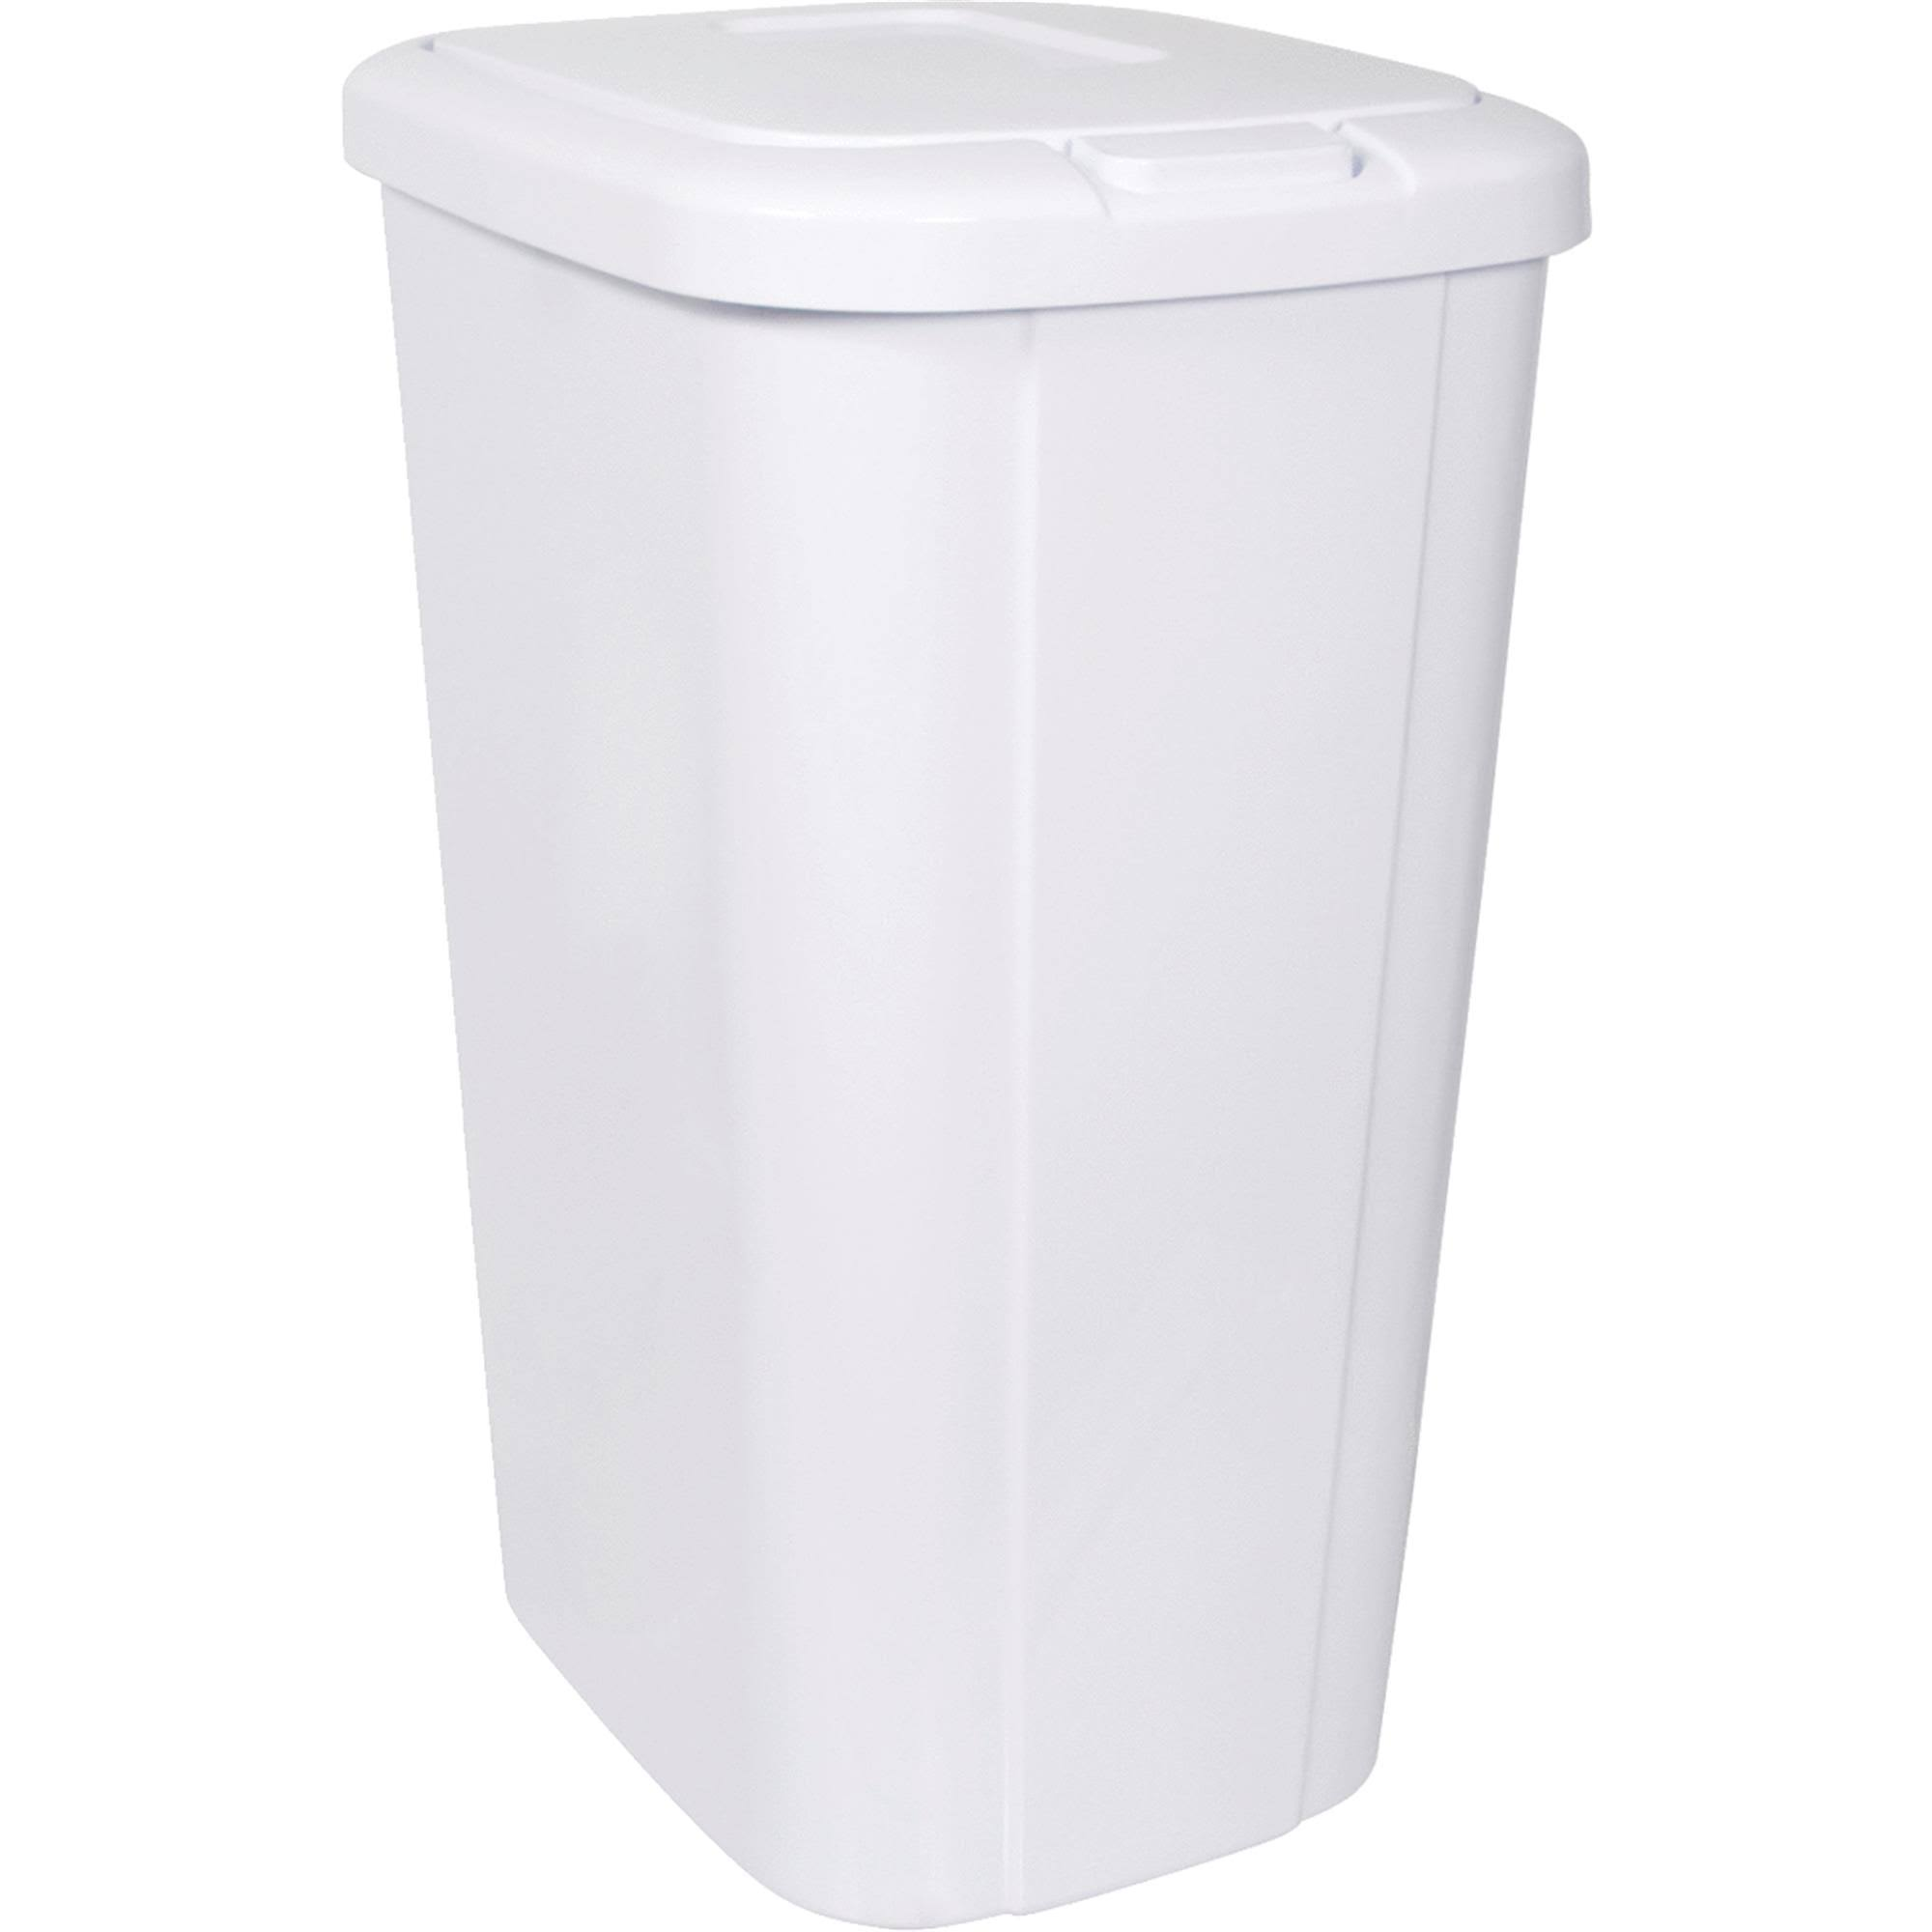 Hefty Touch Lid Trash Can - White, 13.3 Gal